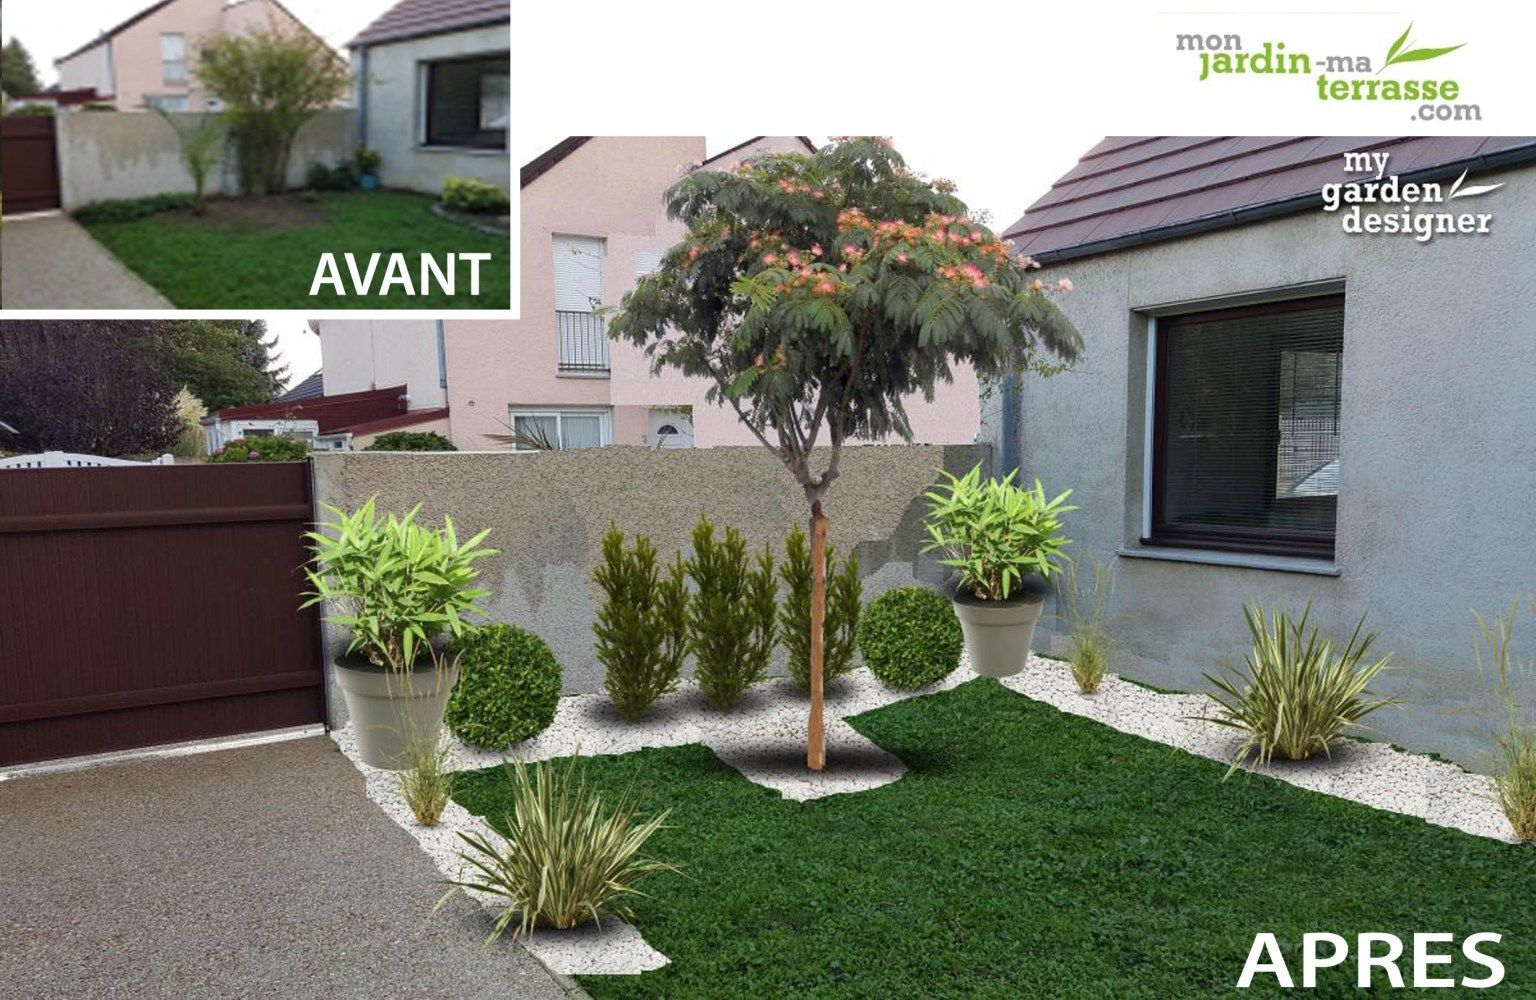 Am nager petit jardin 30m2 id es futur appart terrasse for Exemple amenagement maison